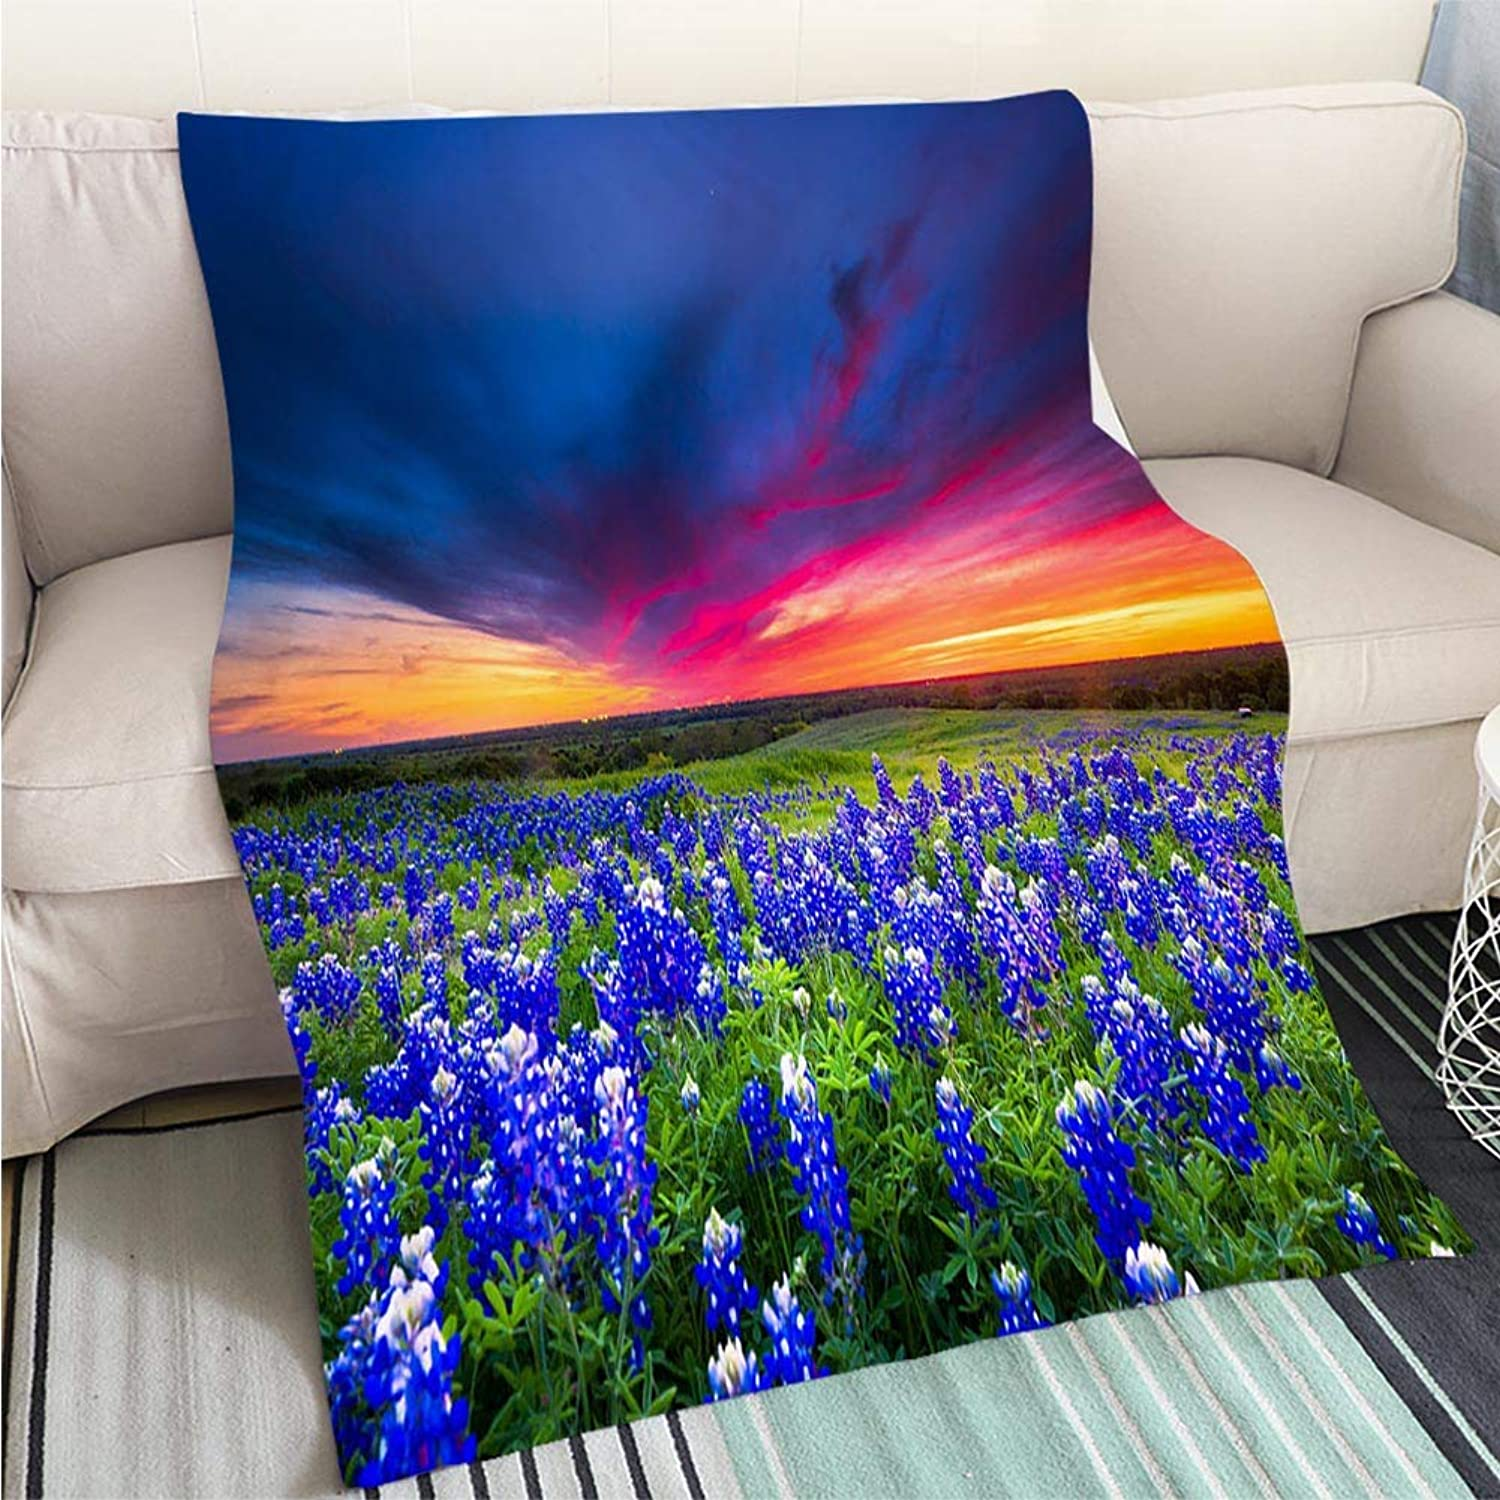 Comforter Multicolor Bed or Couch Field of bluee Flowers on Sugar Ridge Road Ennis Texas Hypoallergenic Blanket for Bed Couch Chair